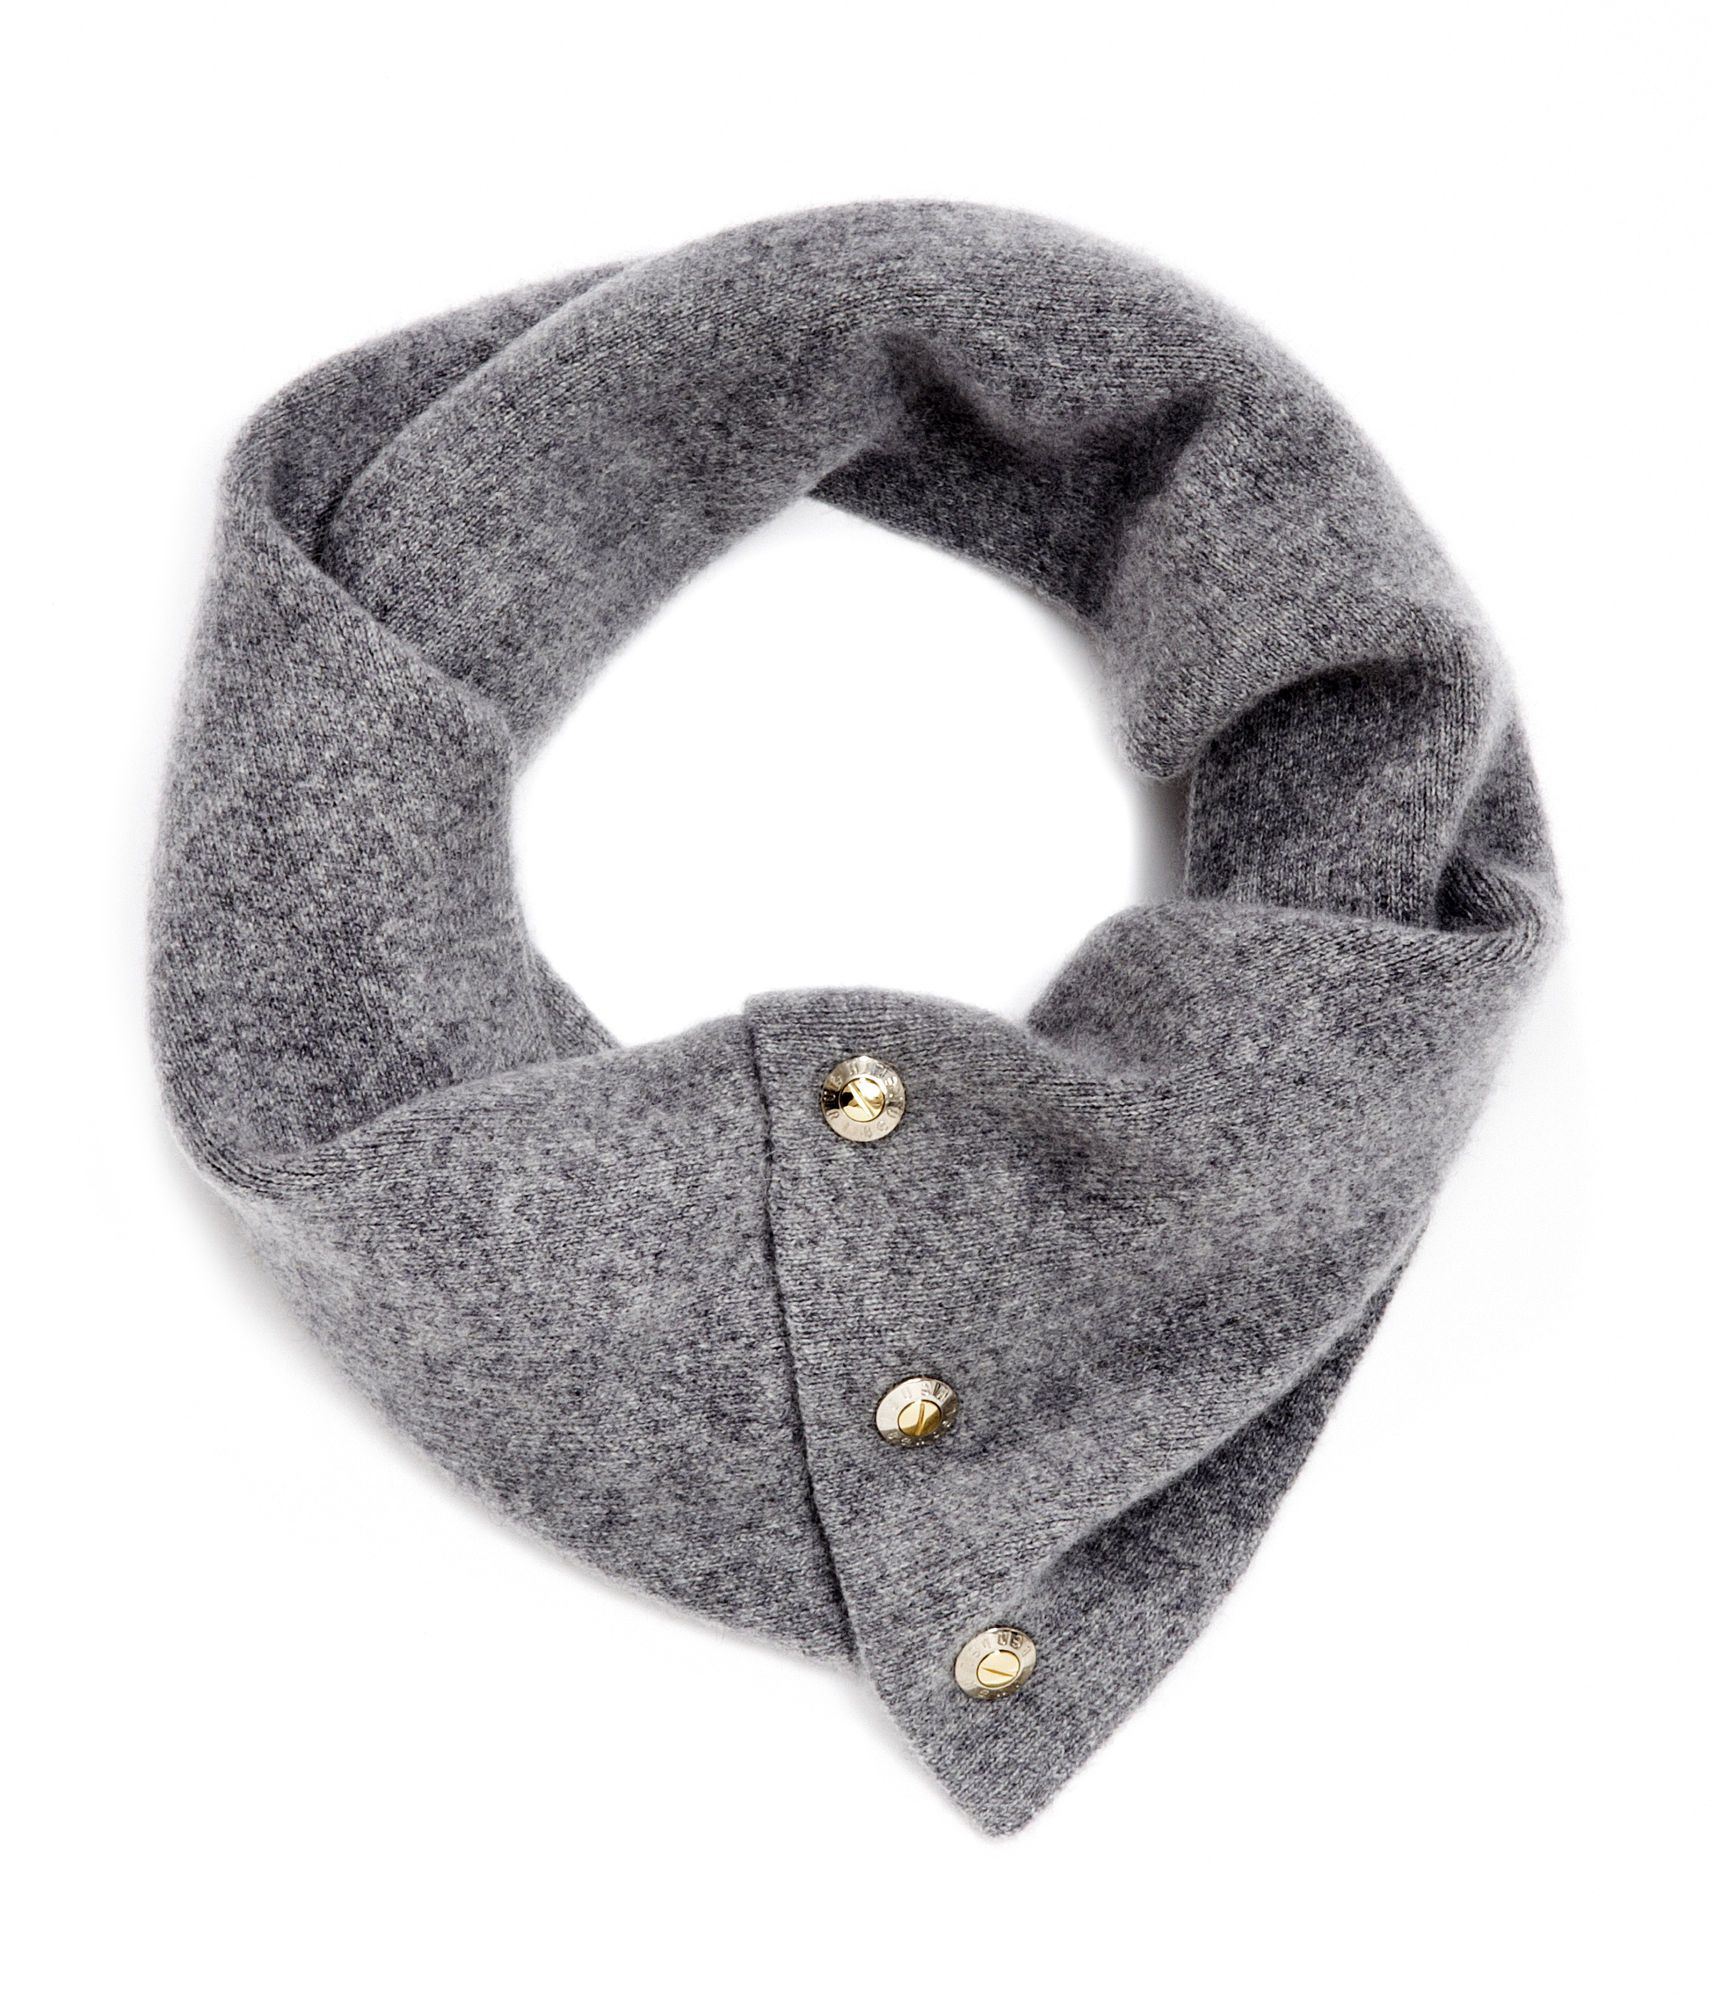 los scarf james perse angeles sep womens cashmere fr infinity